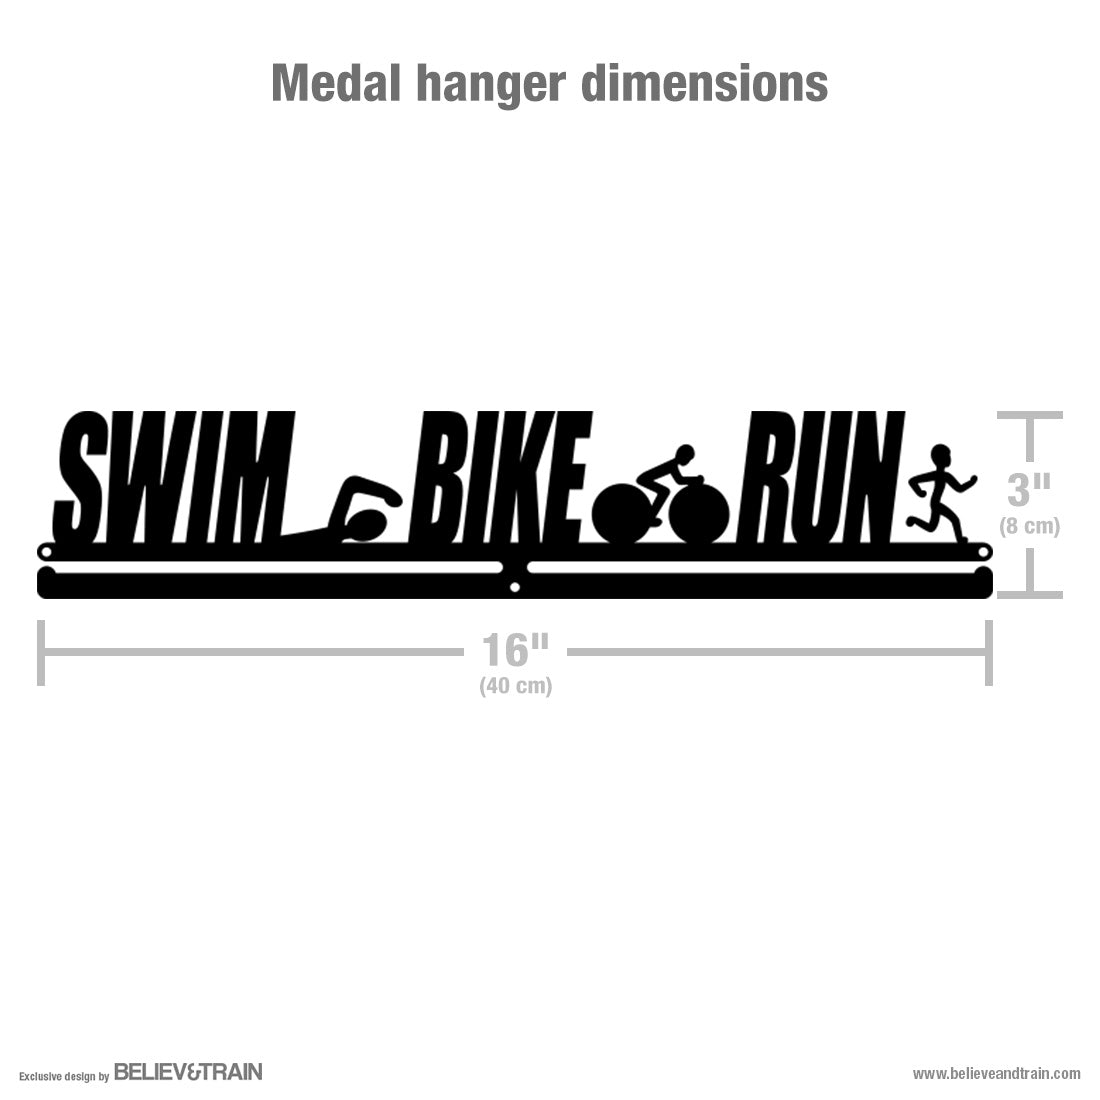 Swim Bike Run Men - Triathlon Medal Hanger